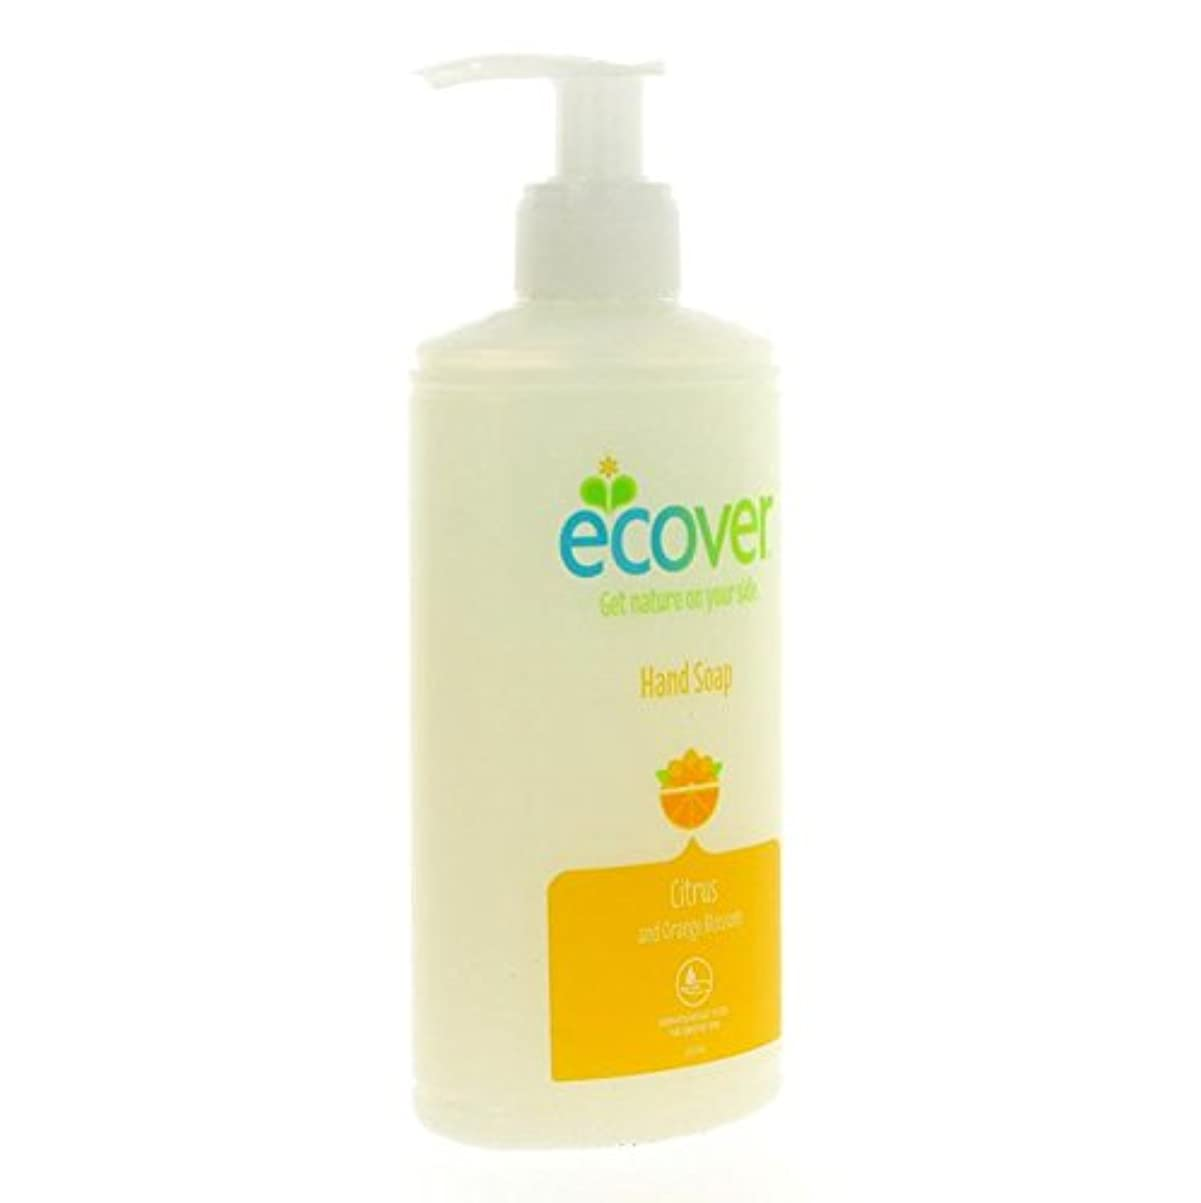 転送平行請願者Ecover - Hand Soap - Citrus and Orange Blossom - 250ml (Case of 6)